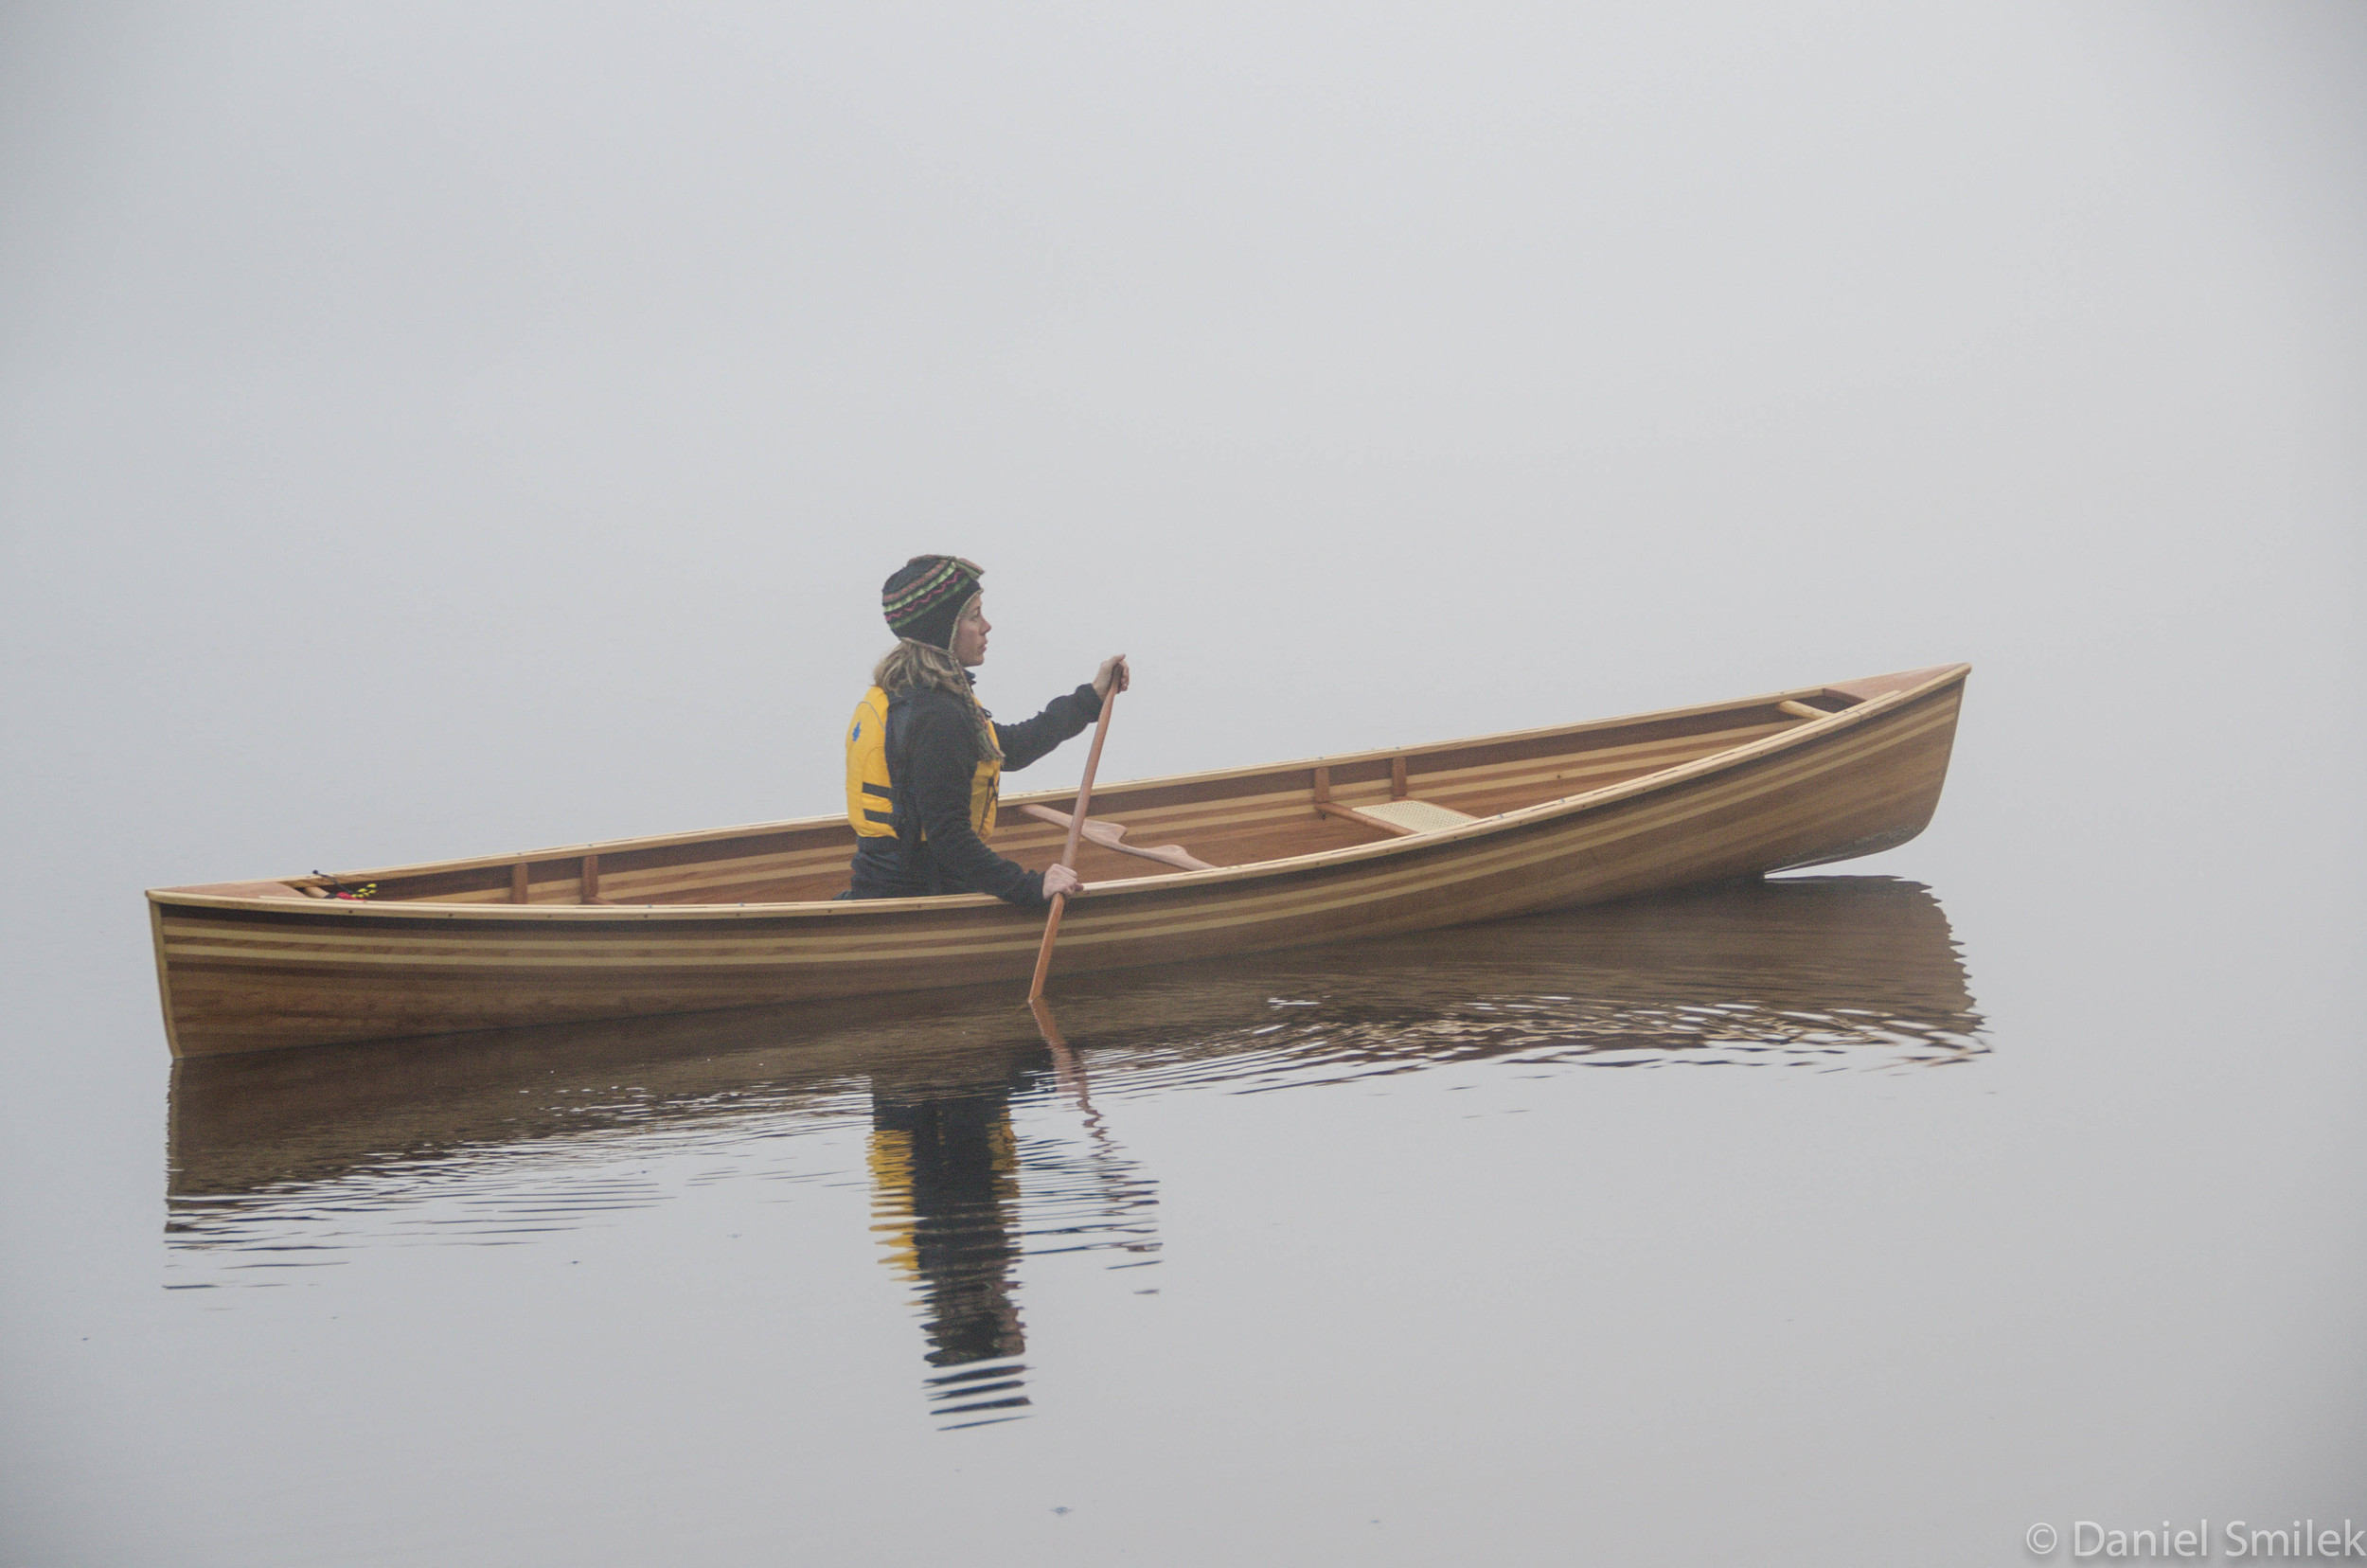 Shelley paddling the cedar strip Kipawa on a misty morning in Algonquin Park.